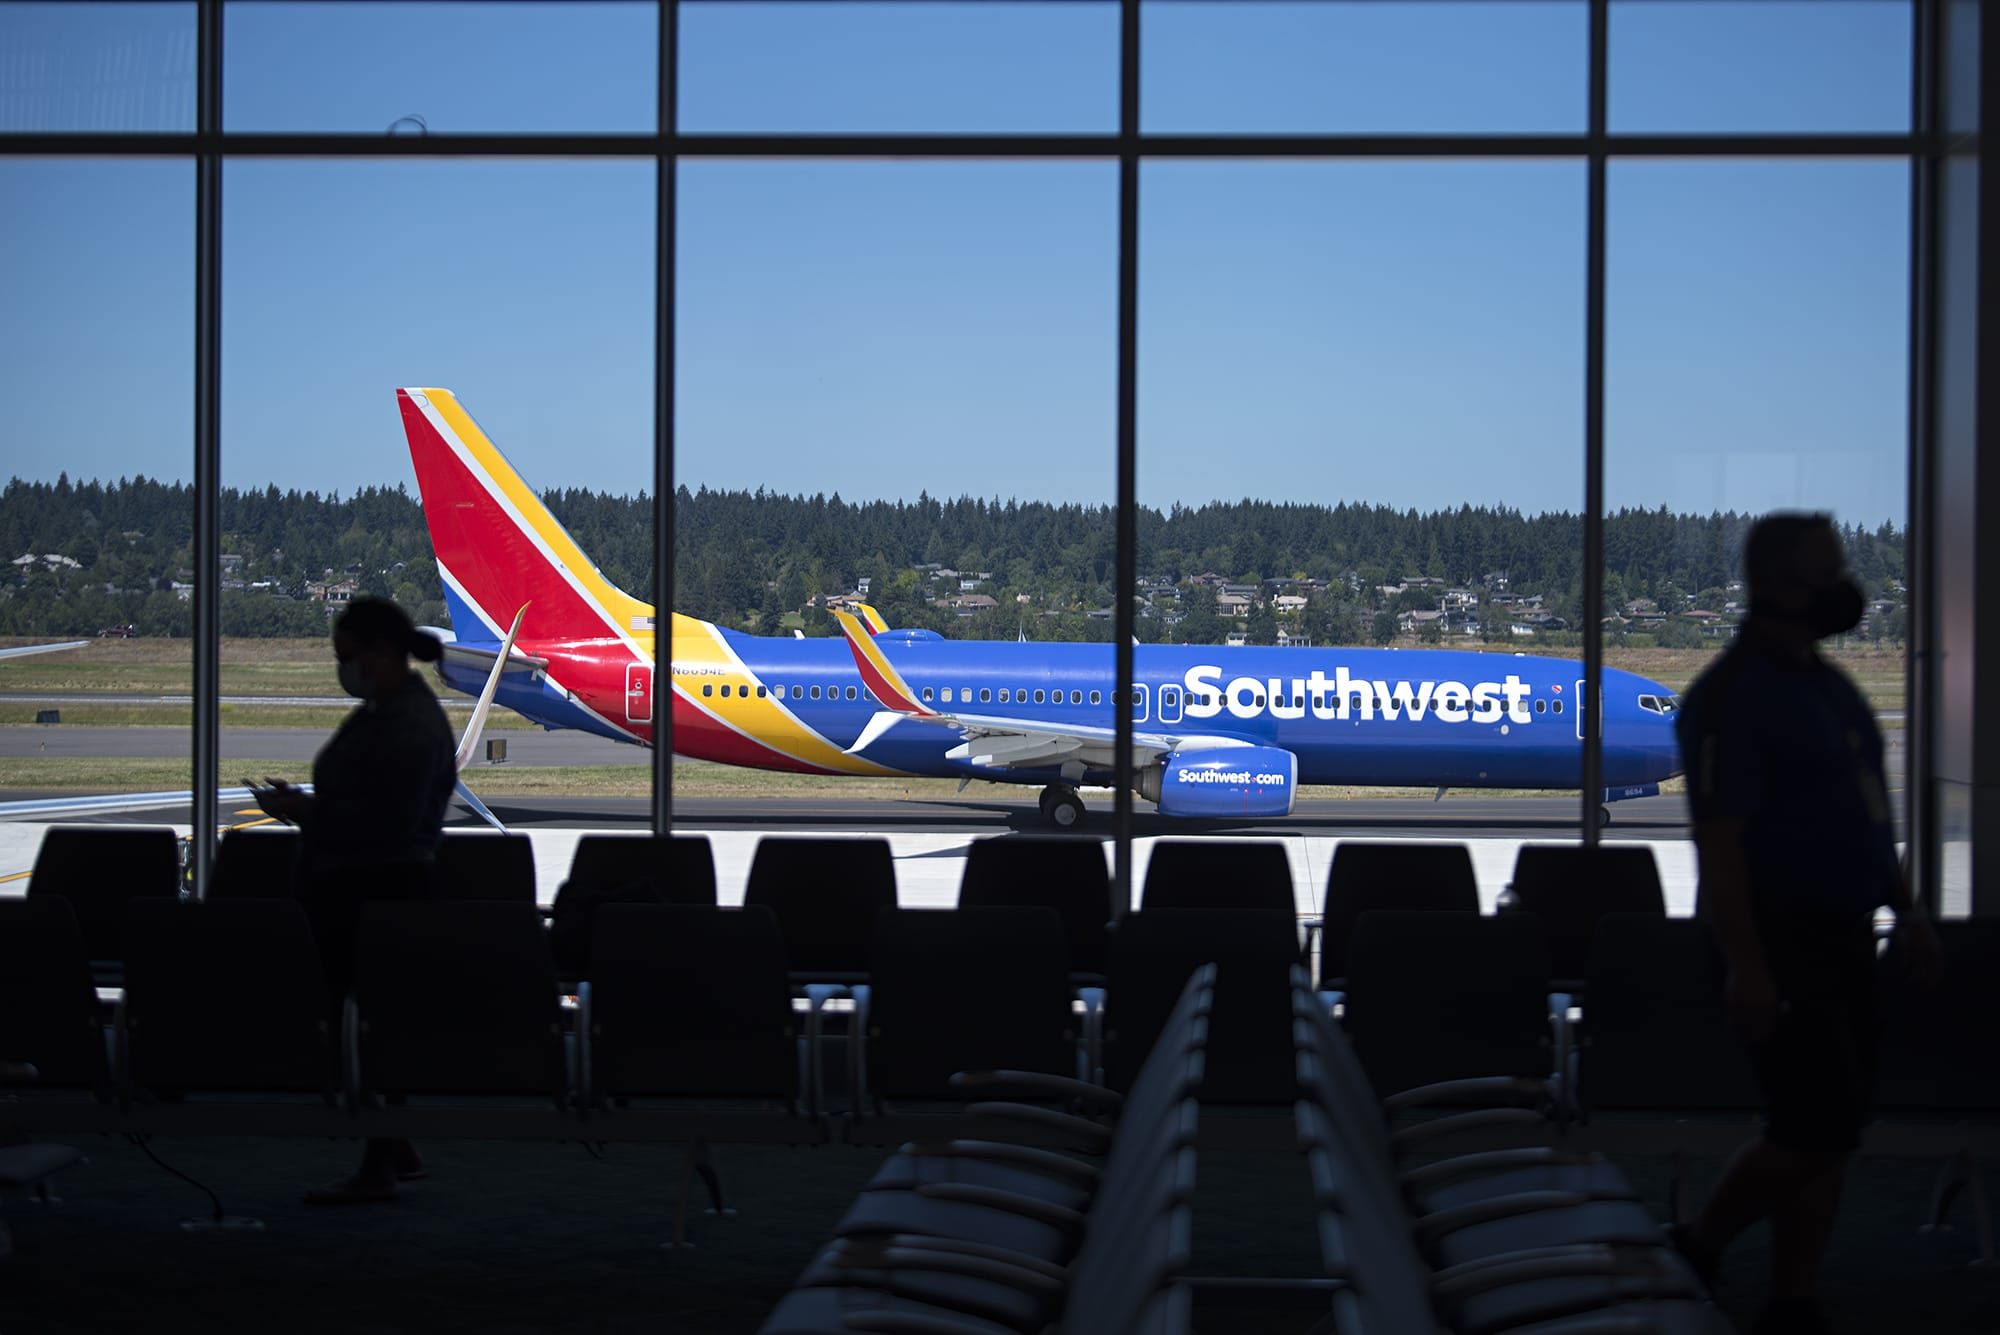 Travelers at gate E10 wait to board a Southwest plane in the new concourse E extension at Portland International Airport on Wednesday afternoon, July 15, 2020. The new section is now the home for Southwest Airlines. (Amanda Cowan/The Columbian)